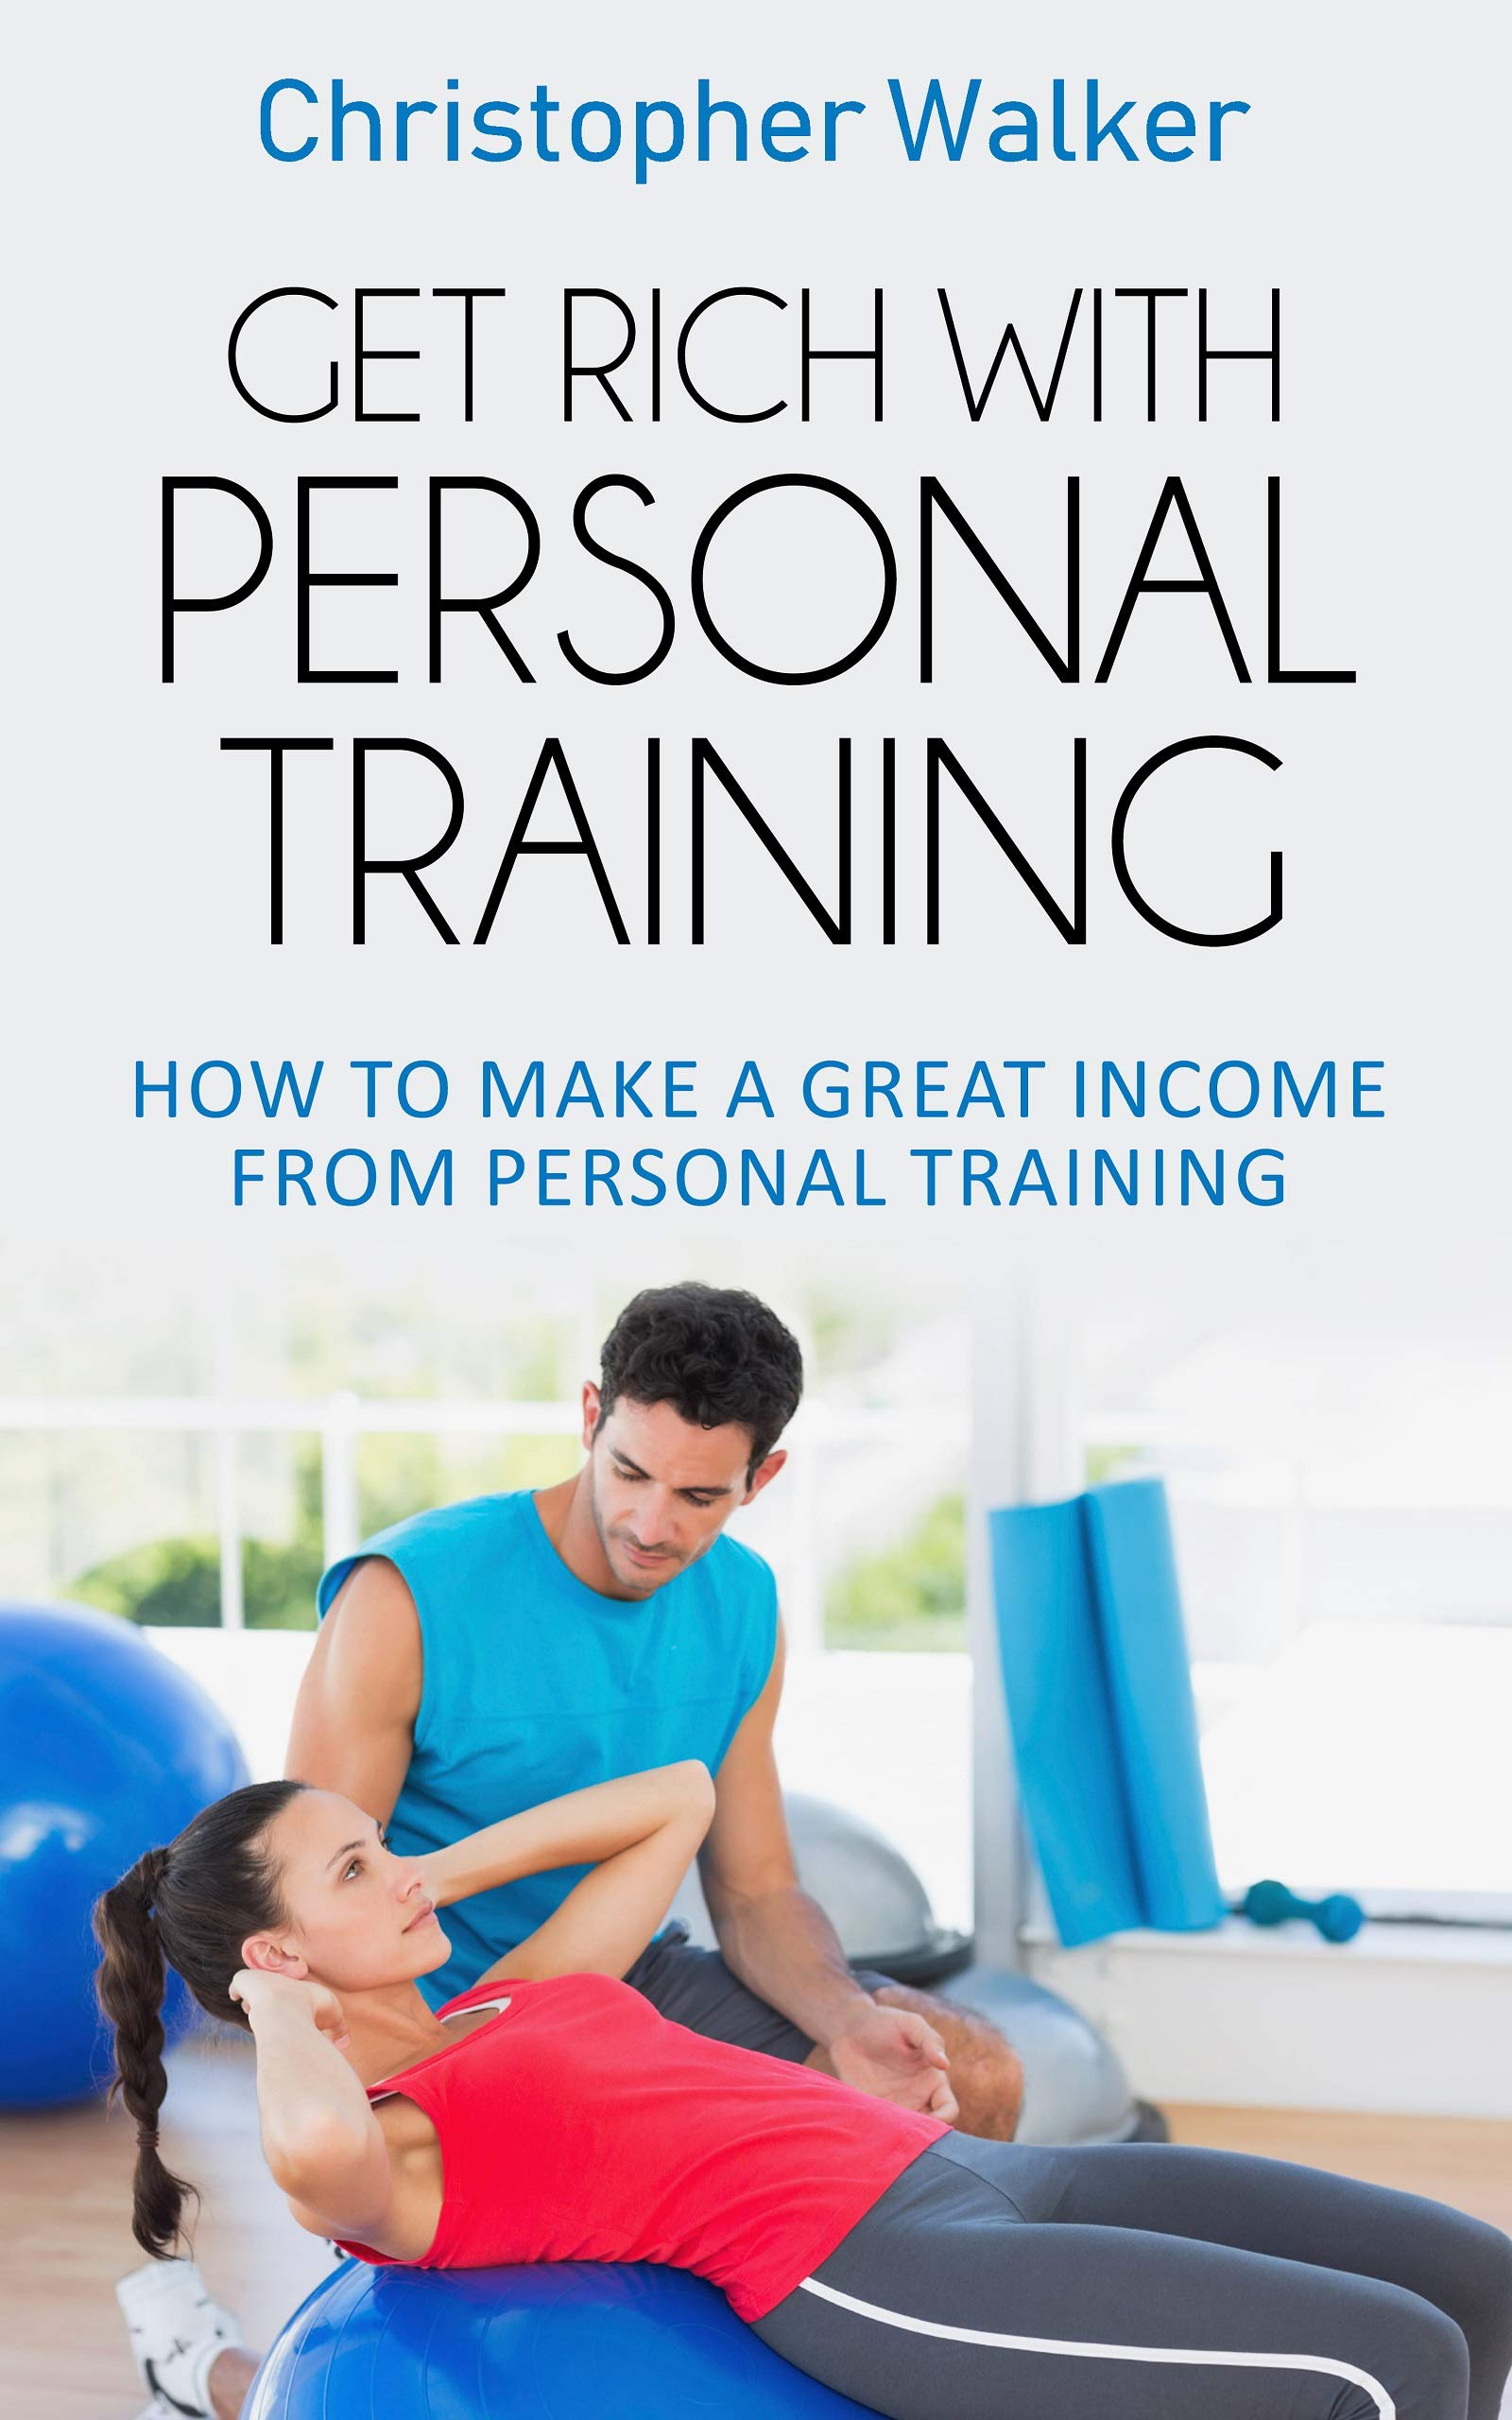 Get Rich With Personal Training: Personal training business models (The Rapid Results Academy)